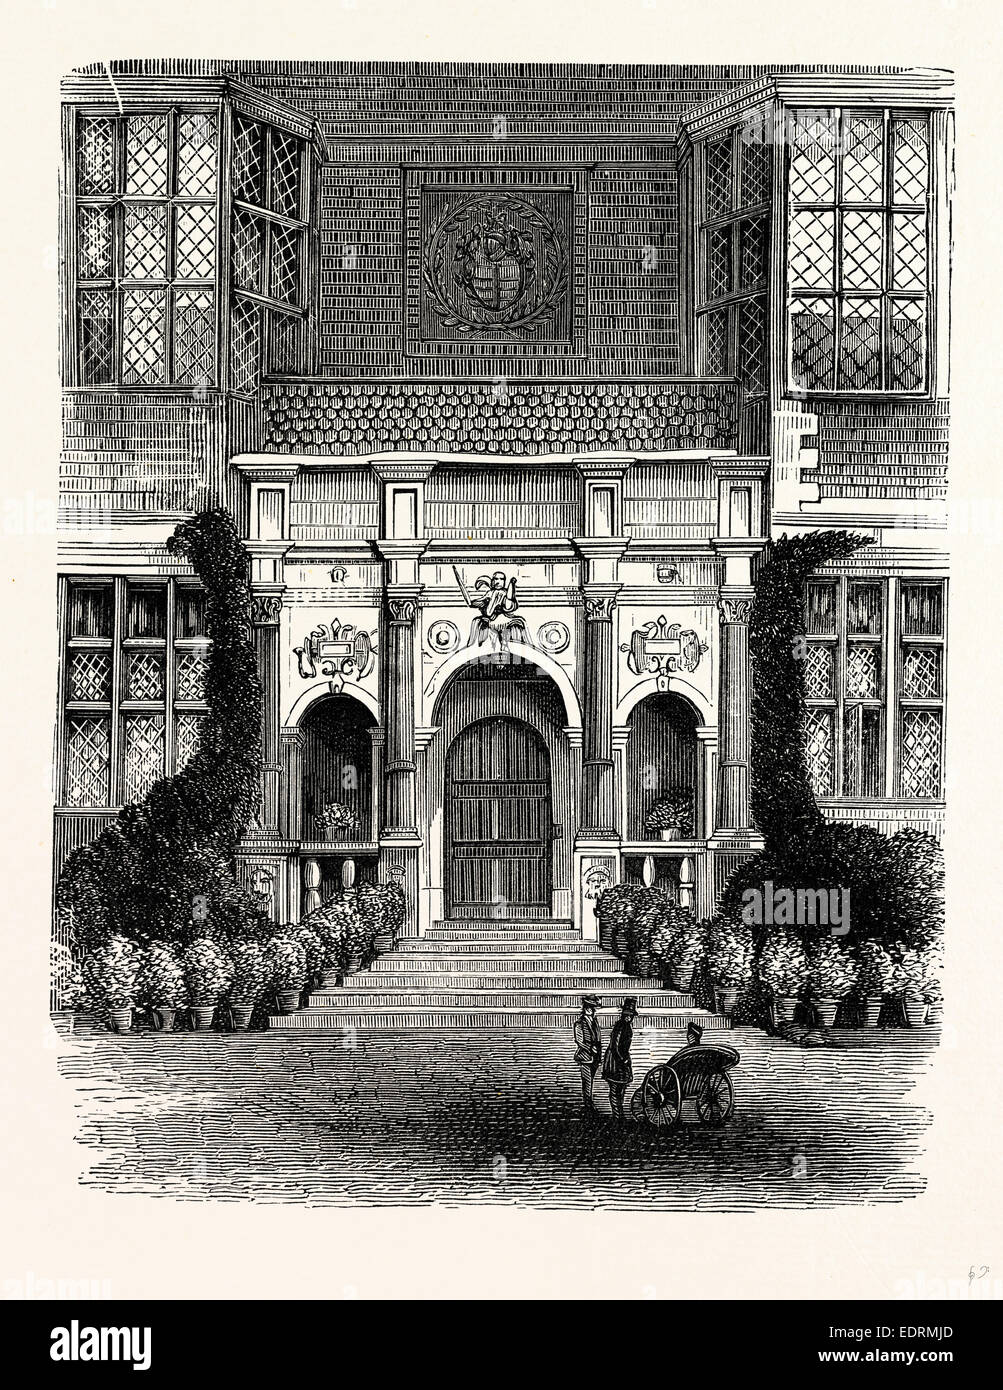 The Entrance Porch, Westwood Park, UK, England, engraving 1870s, Britain - Stock Image